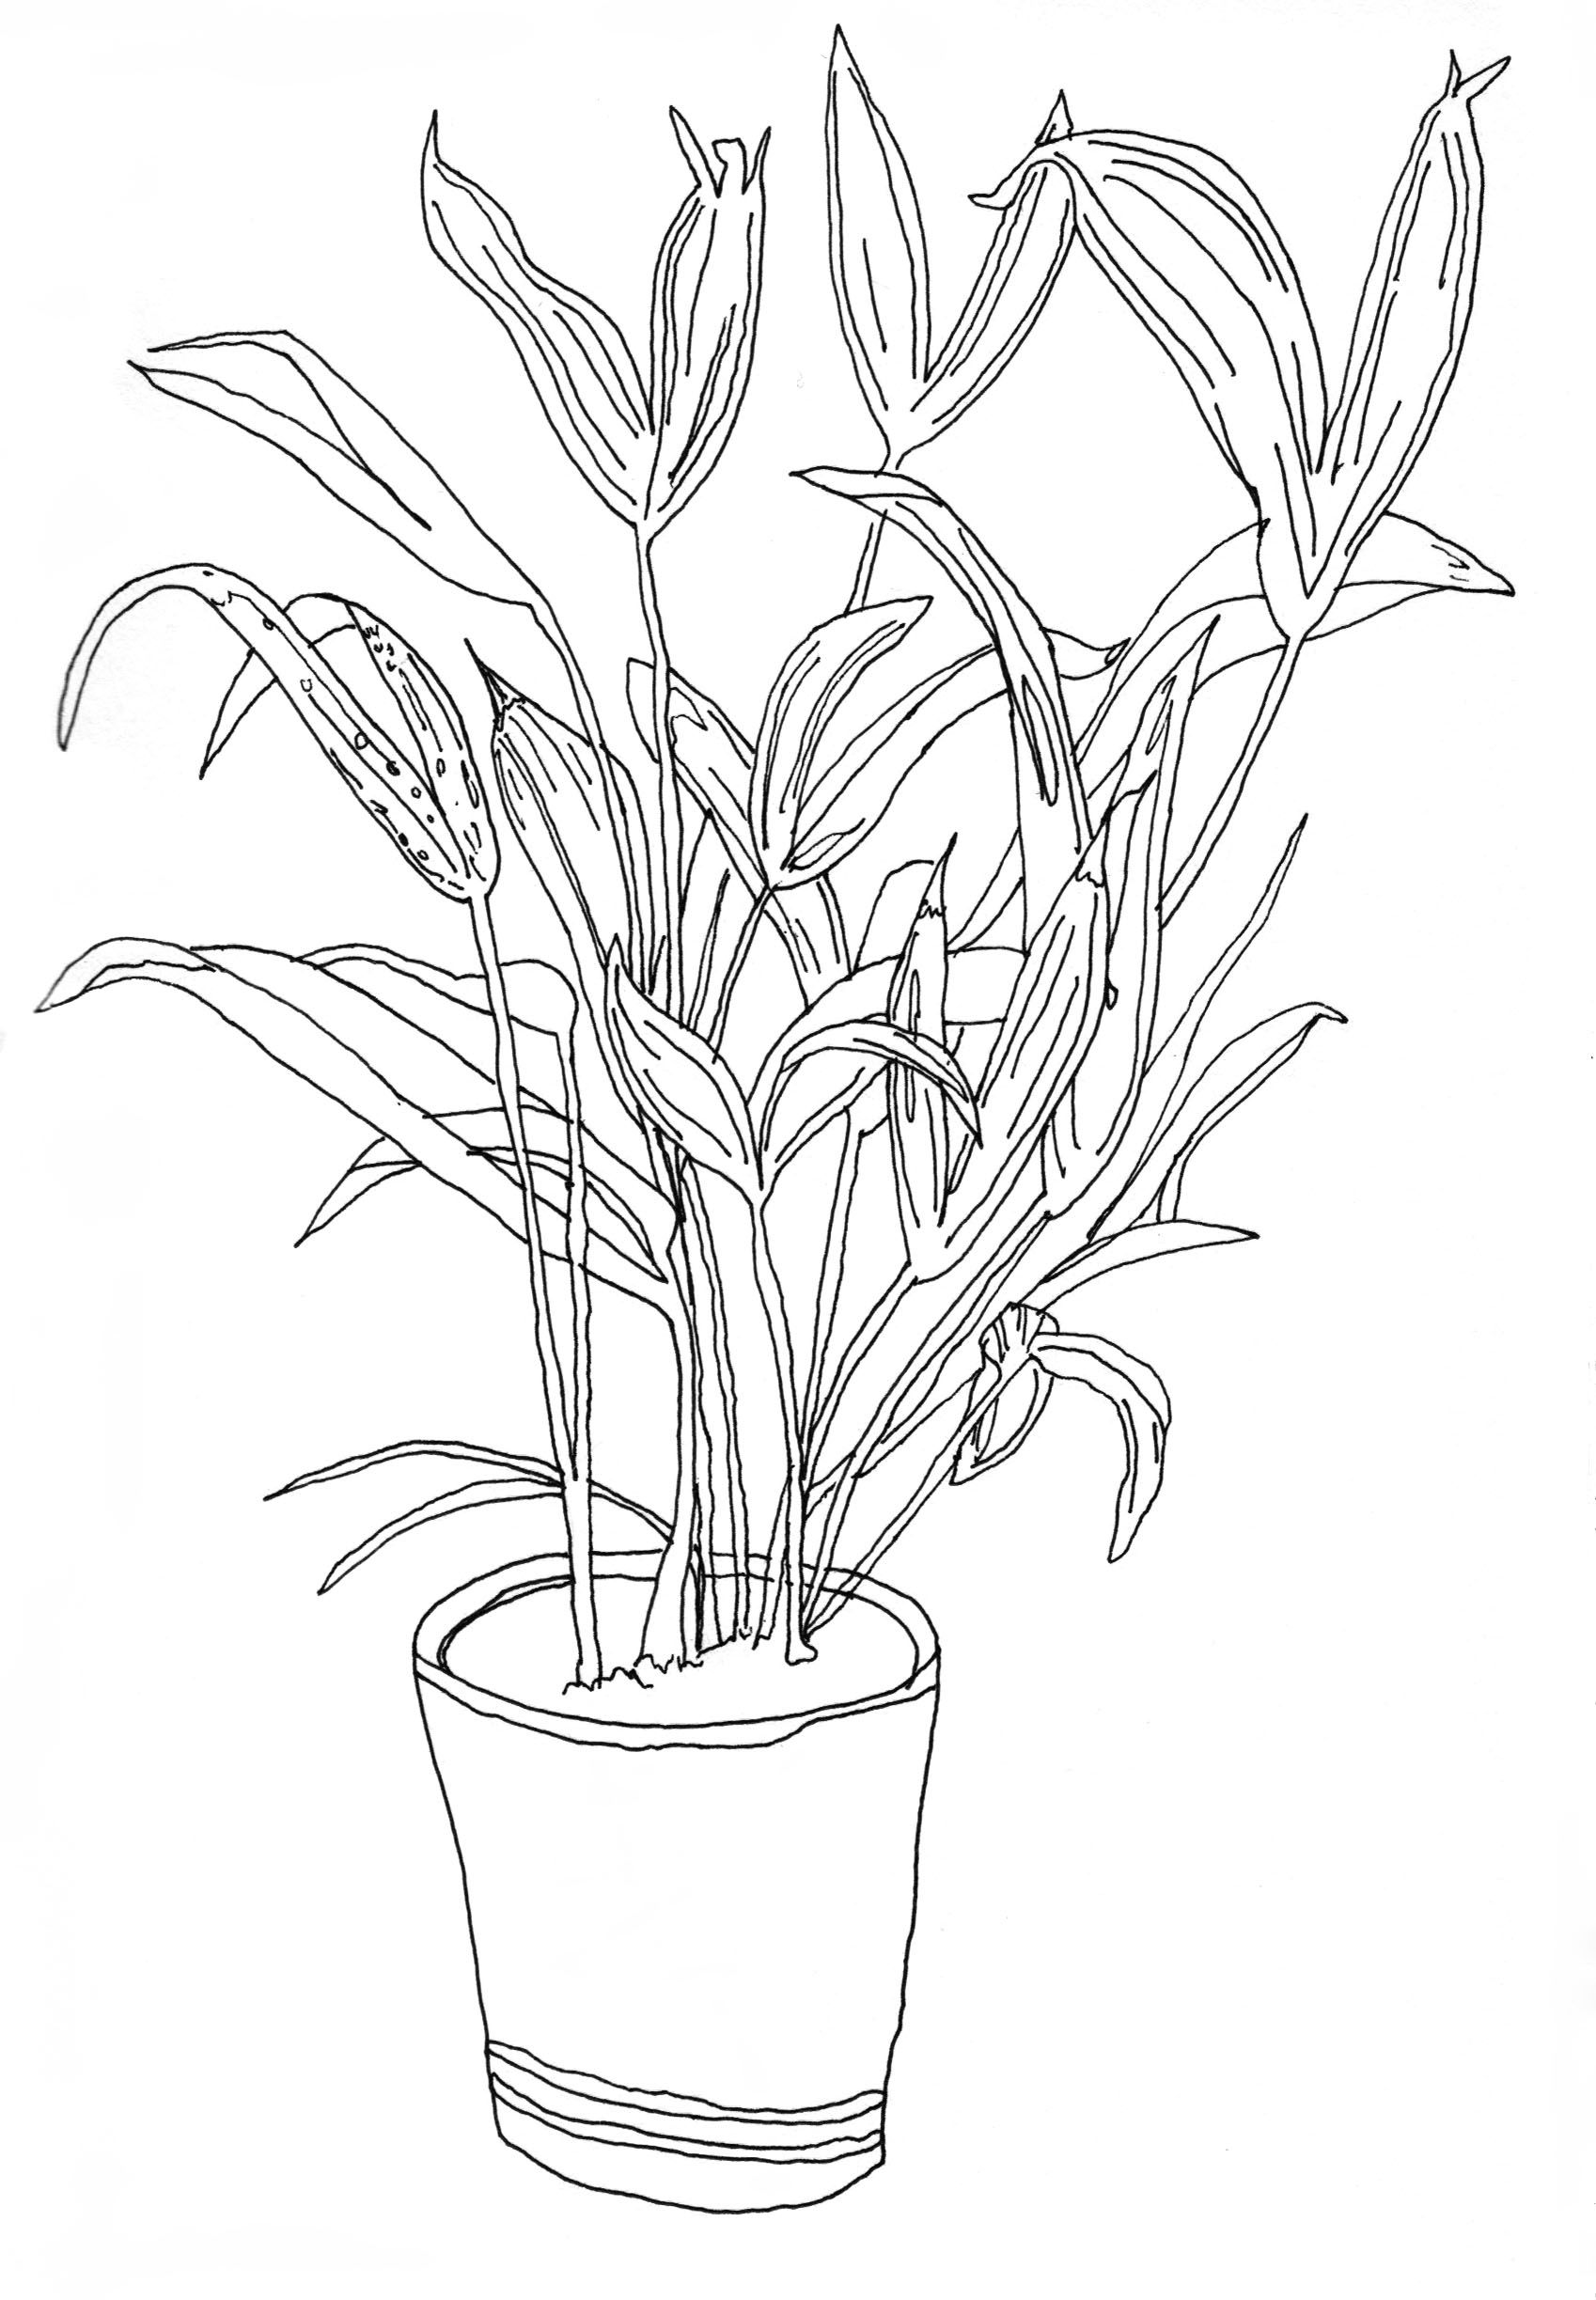 house plants drawing. fine liner line drawing illustration of a house plant by laura carolan plants